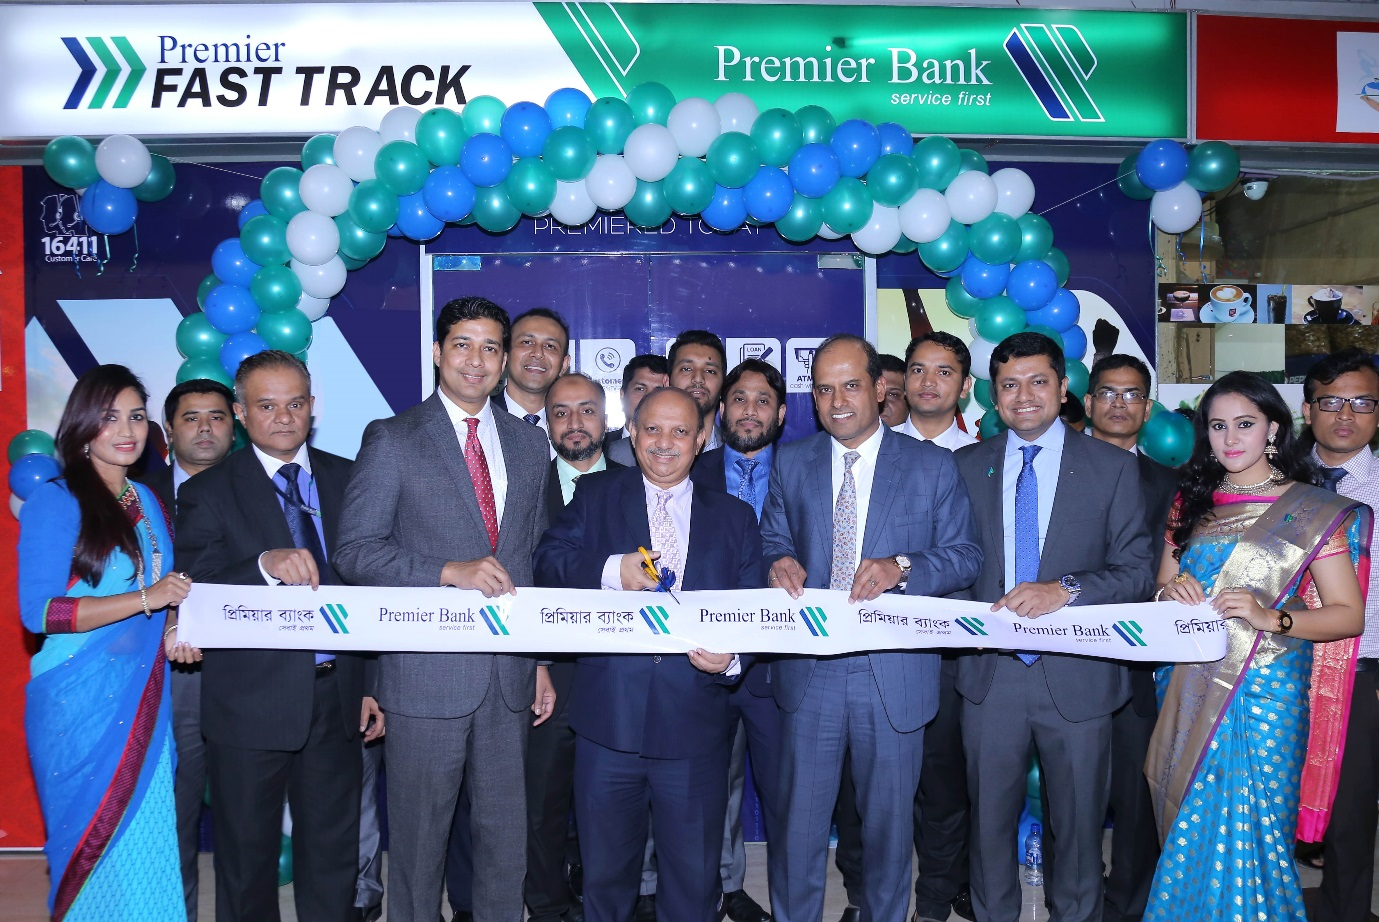 New AMD of Premier Bank